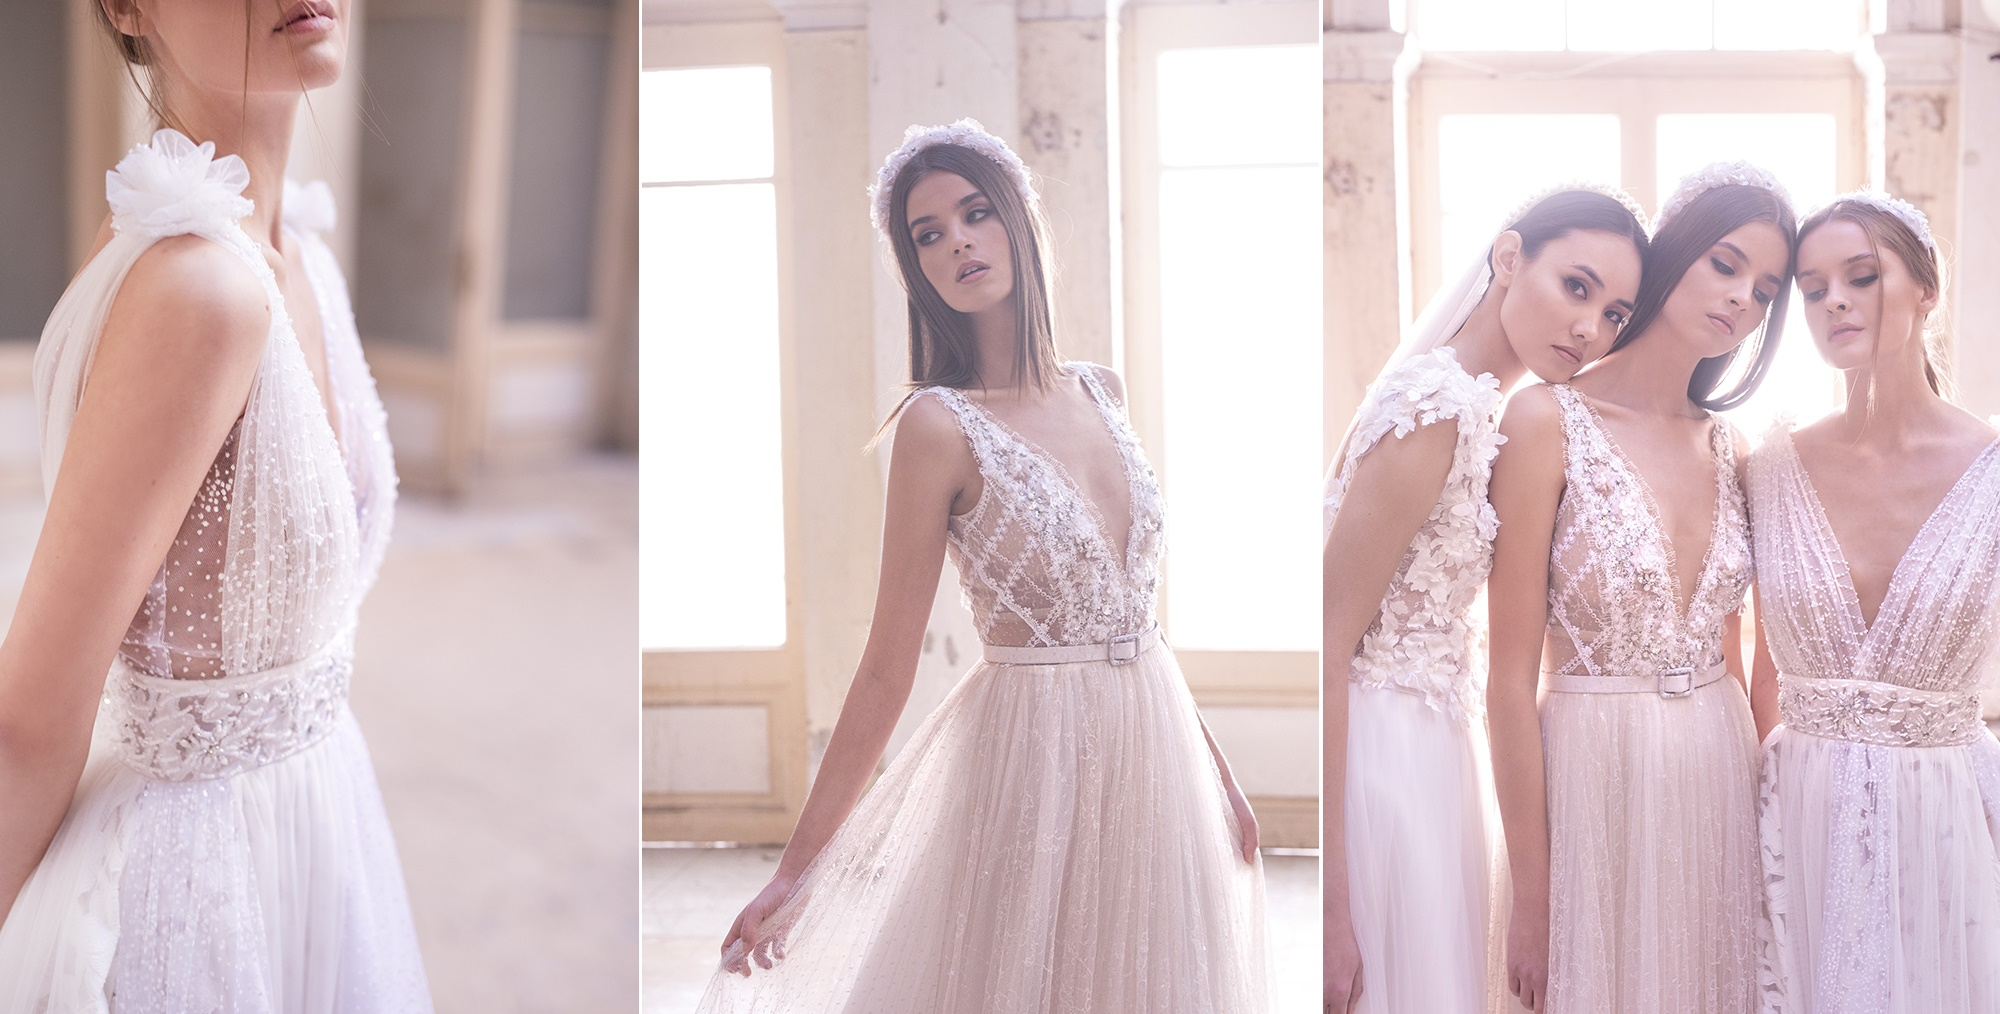 Romantic haute couture wedding dresses by Maison Renata Marmara